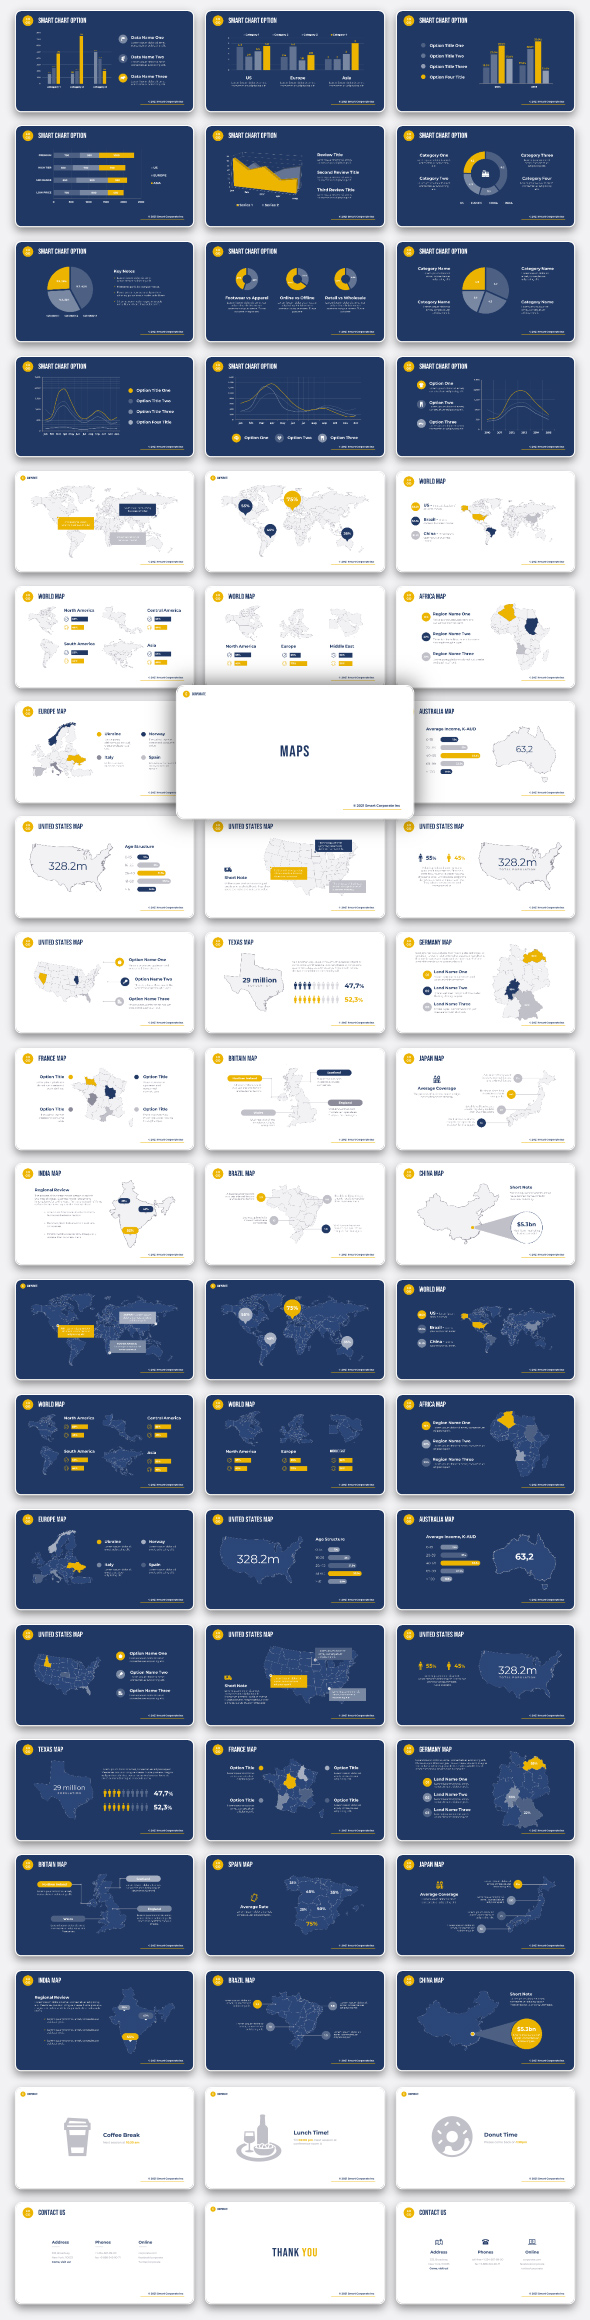 Corporate - Premium PowerPoint Template for Business - 12